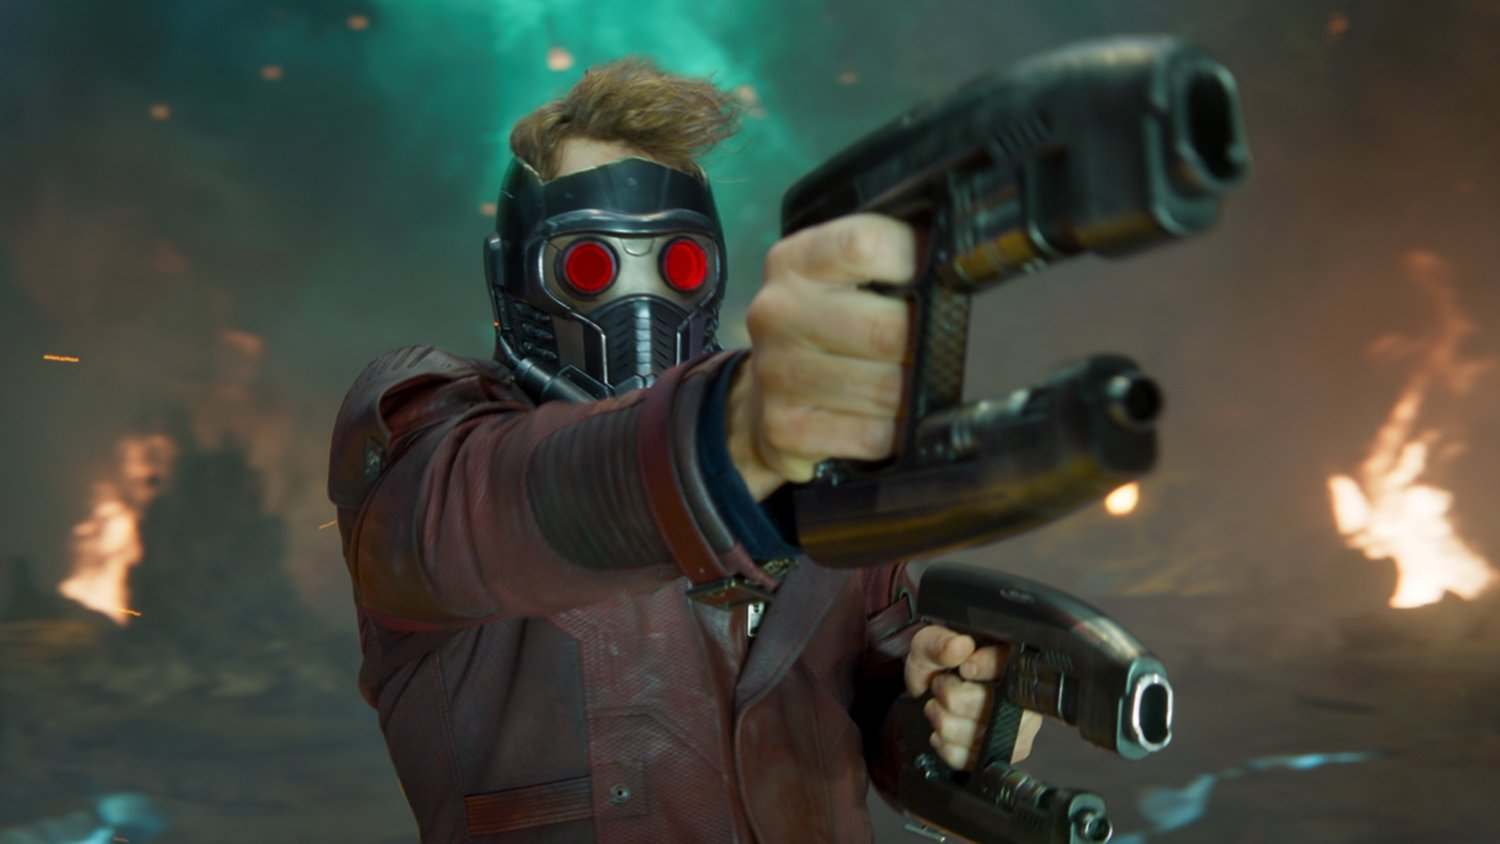 We Can Expect a New GUARDIANS OF THE GALAXY VOL. 2 Trailer Soon